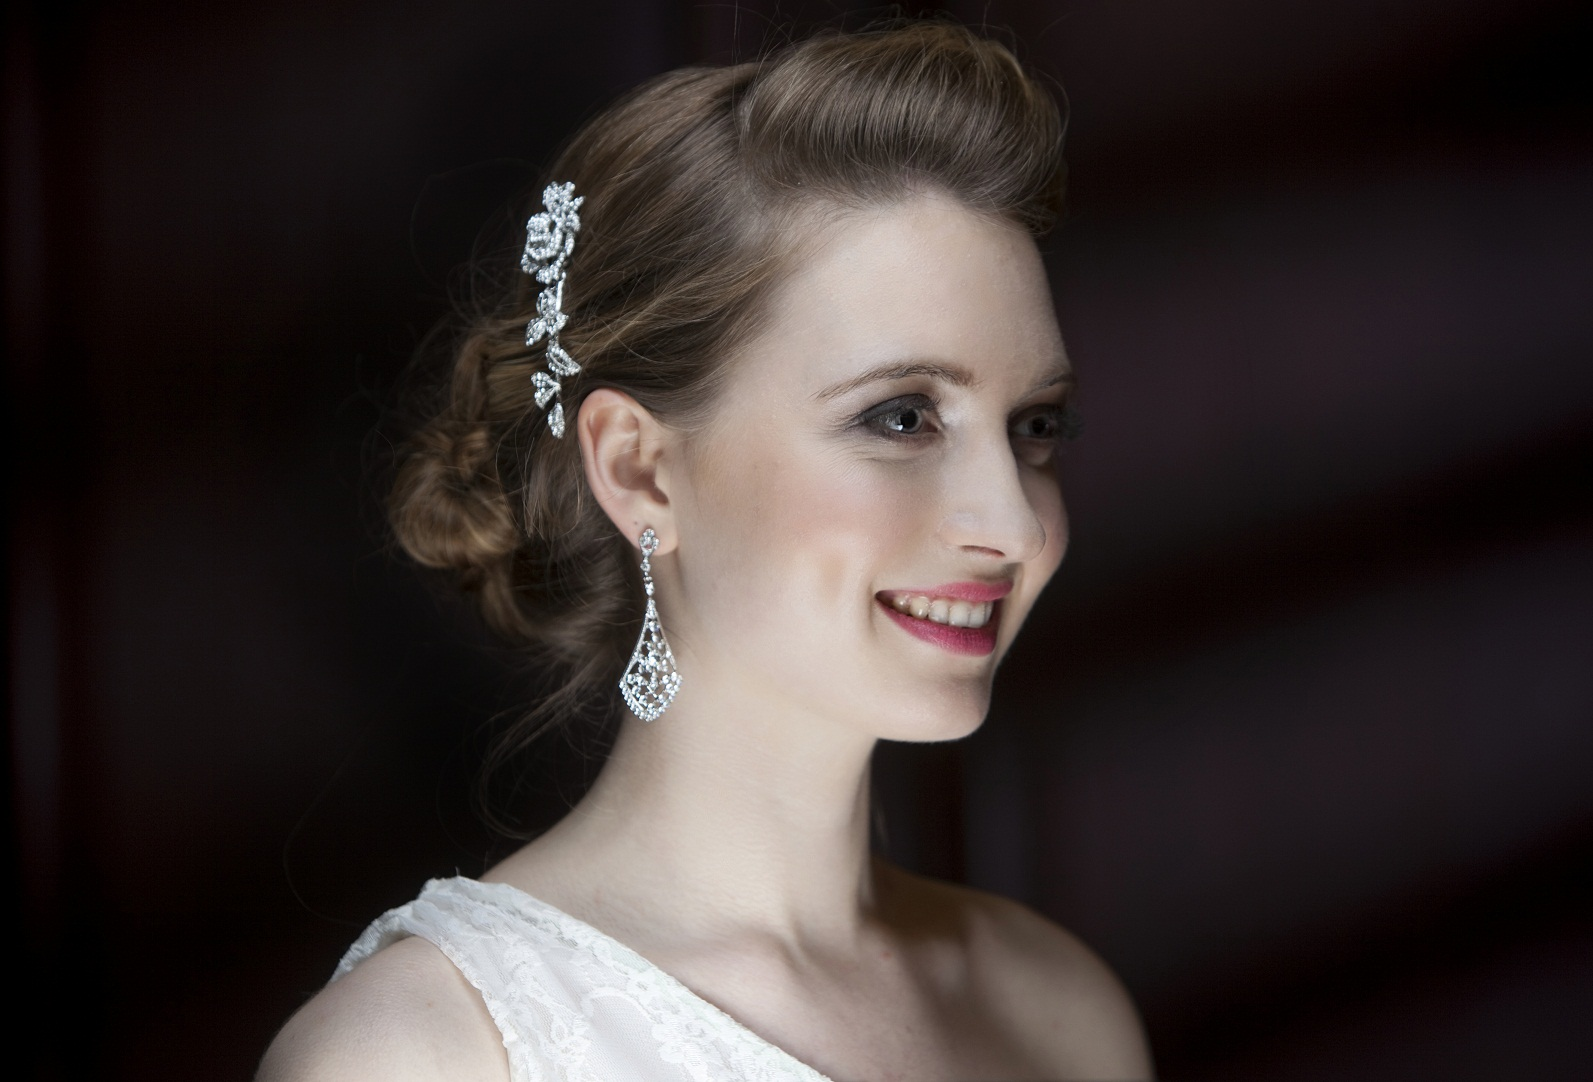 Choosing bridal accessories and jewellery